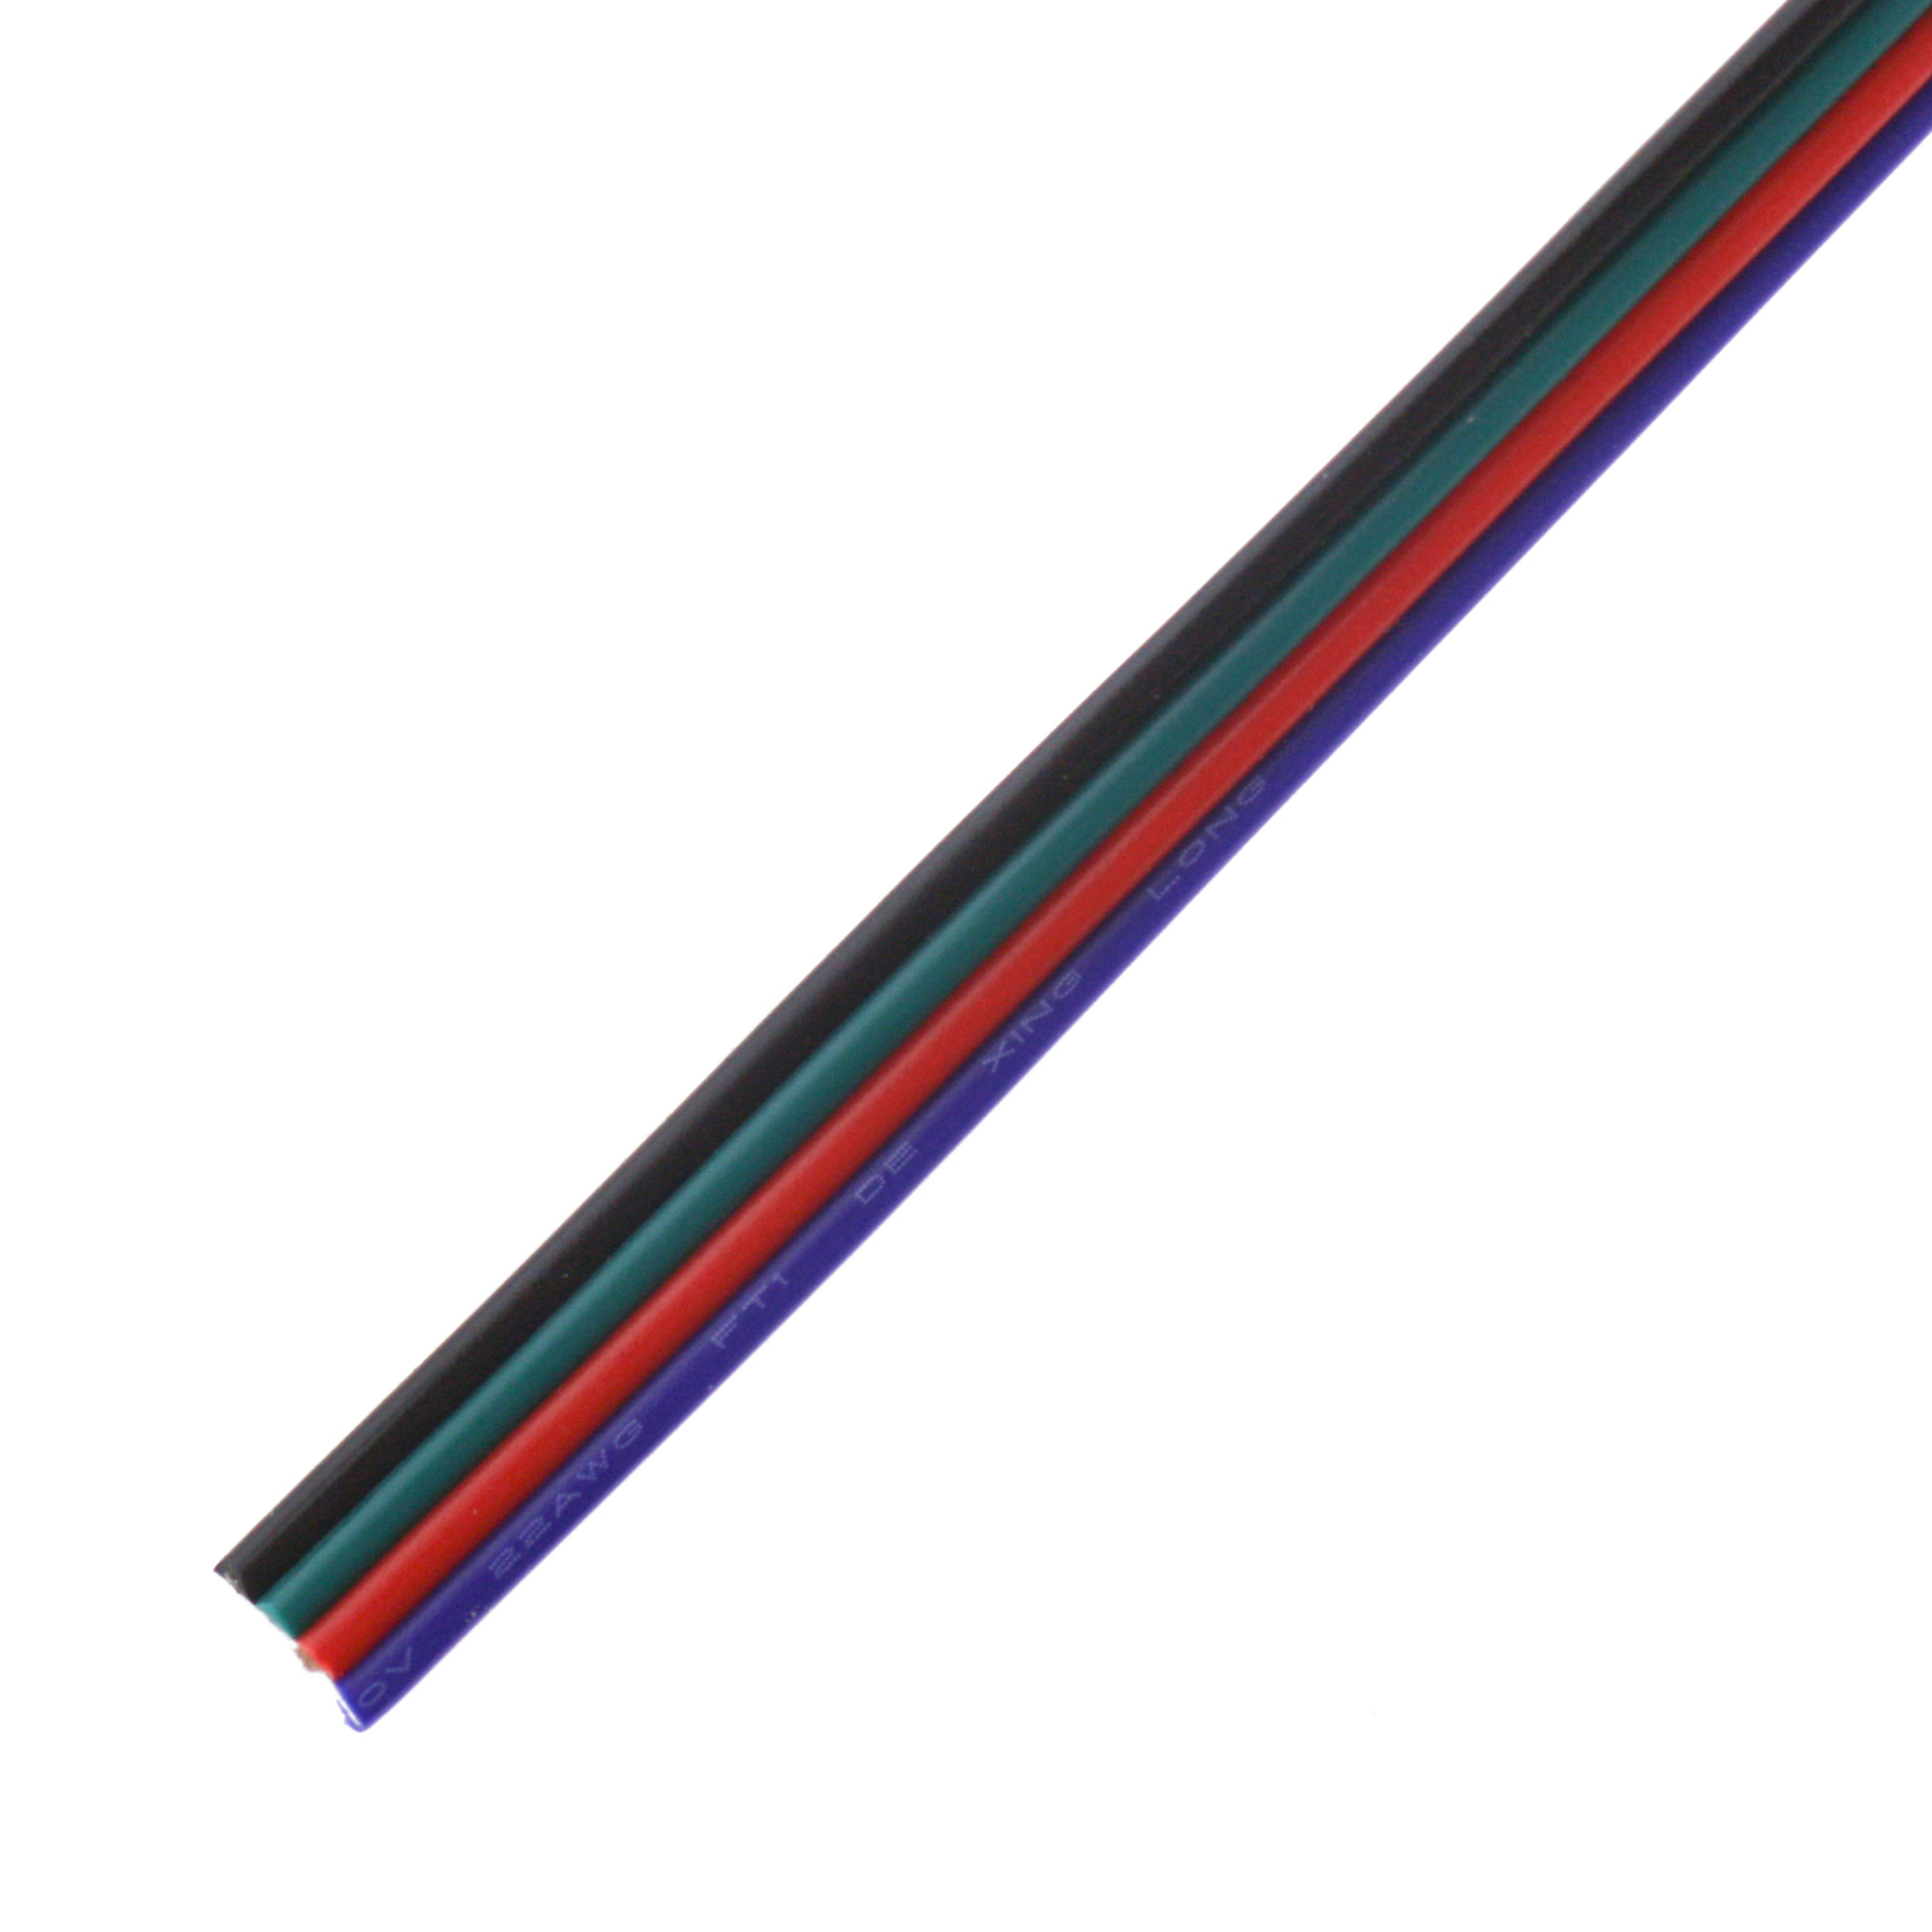 RGB connection wire - 10 meter